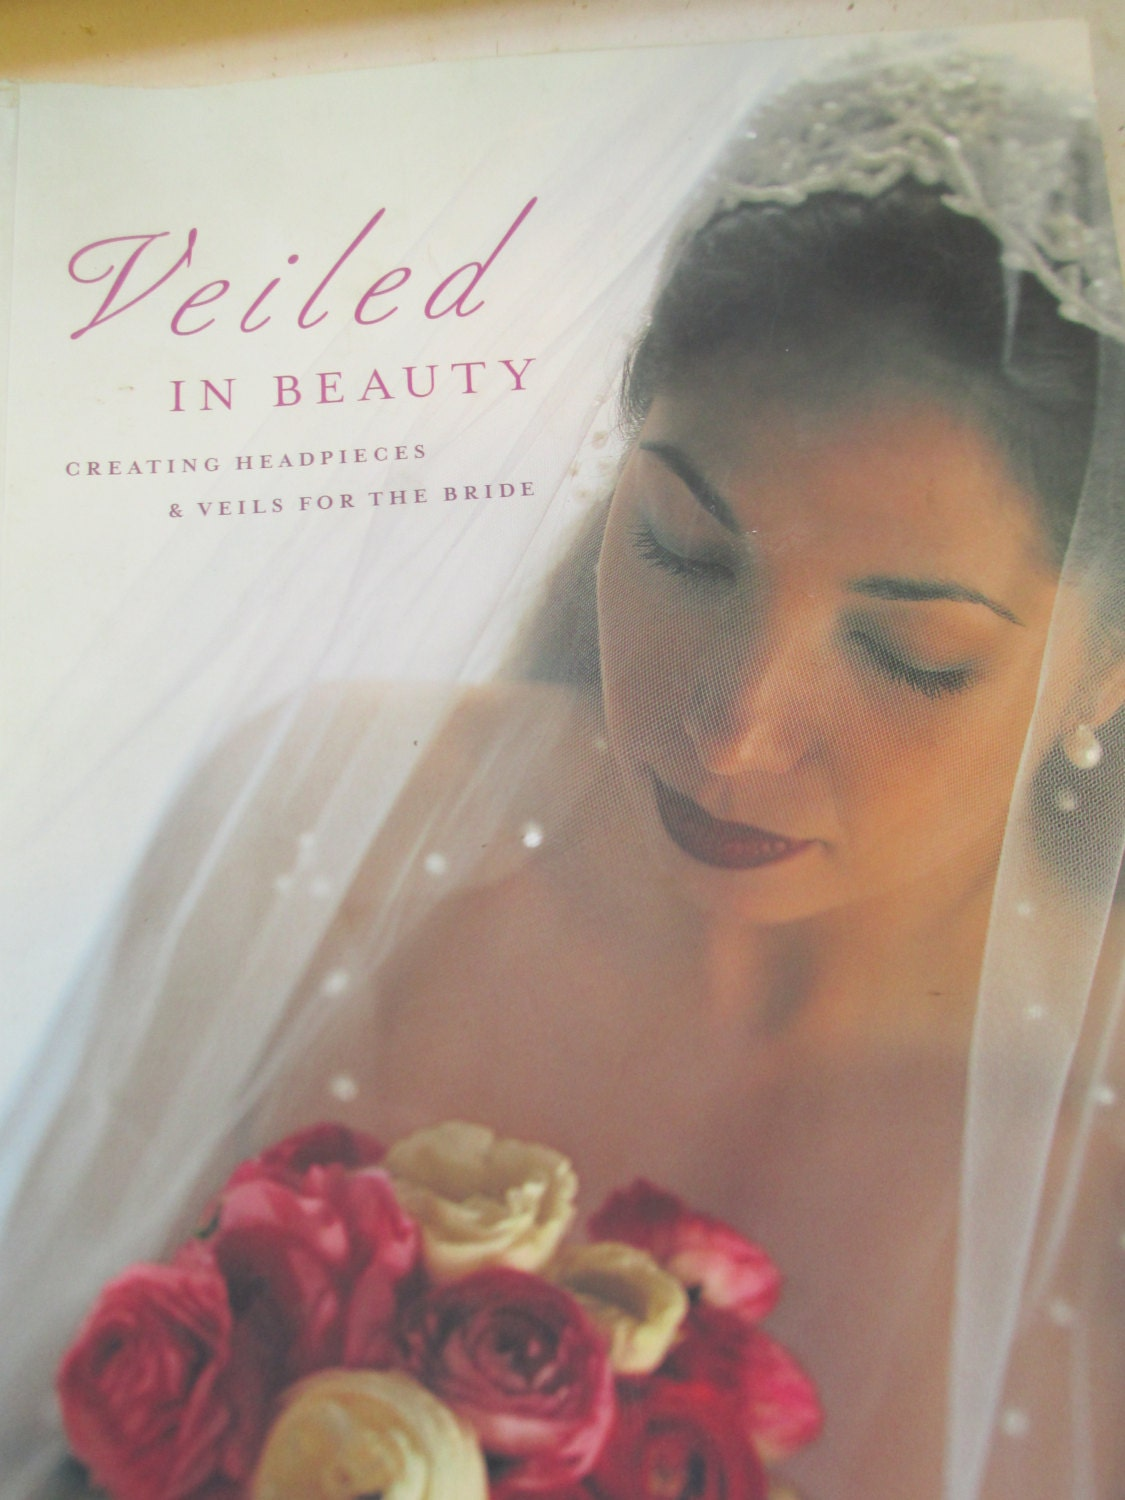 Making Your Own Wedding Makeup : Make Your own Wedding Veil Veiled In Beauty